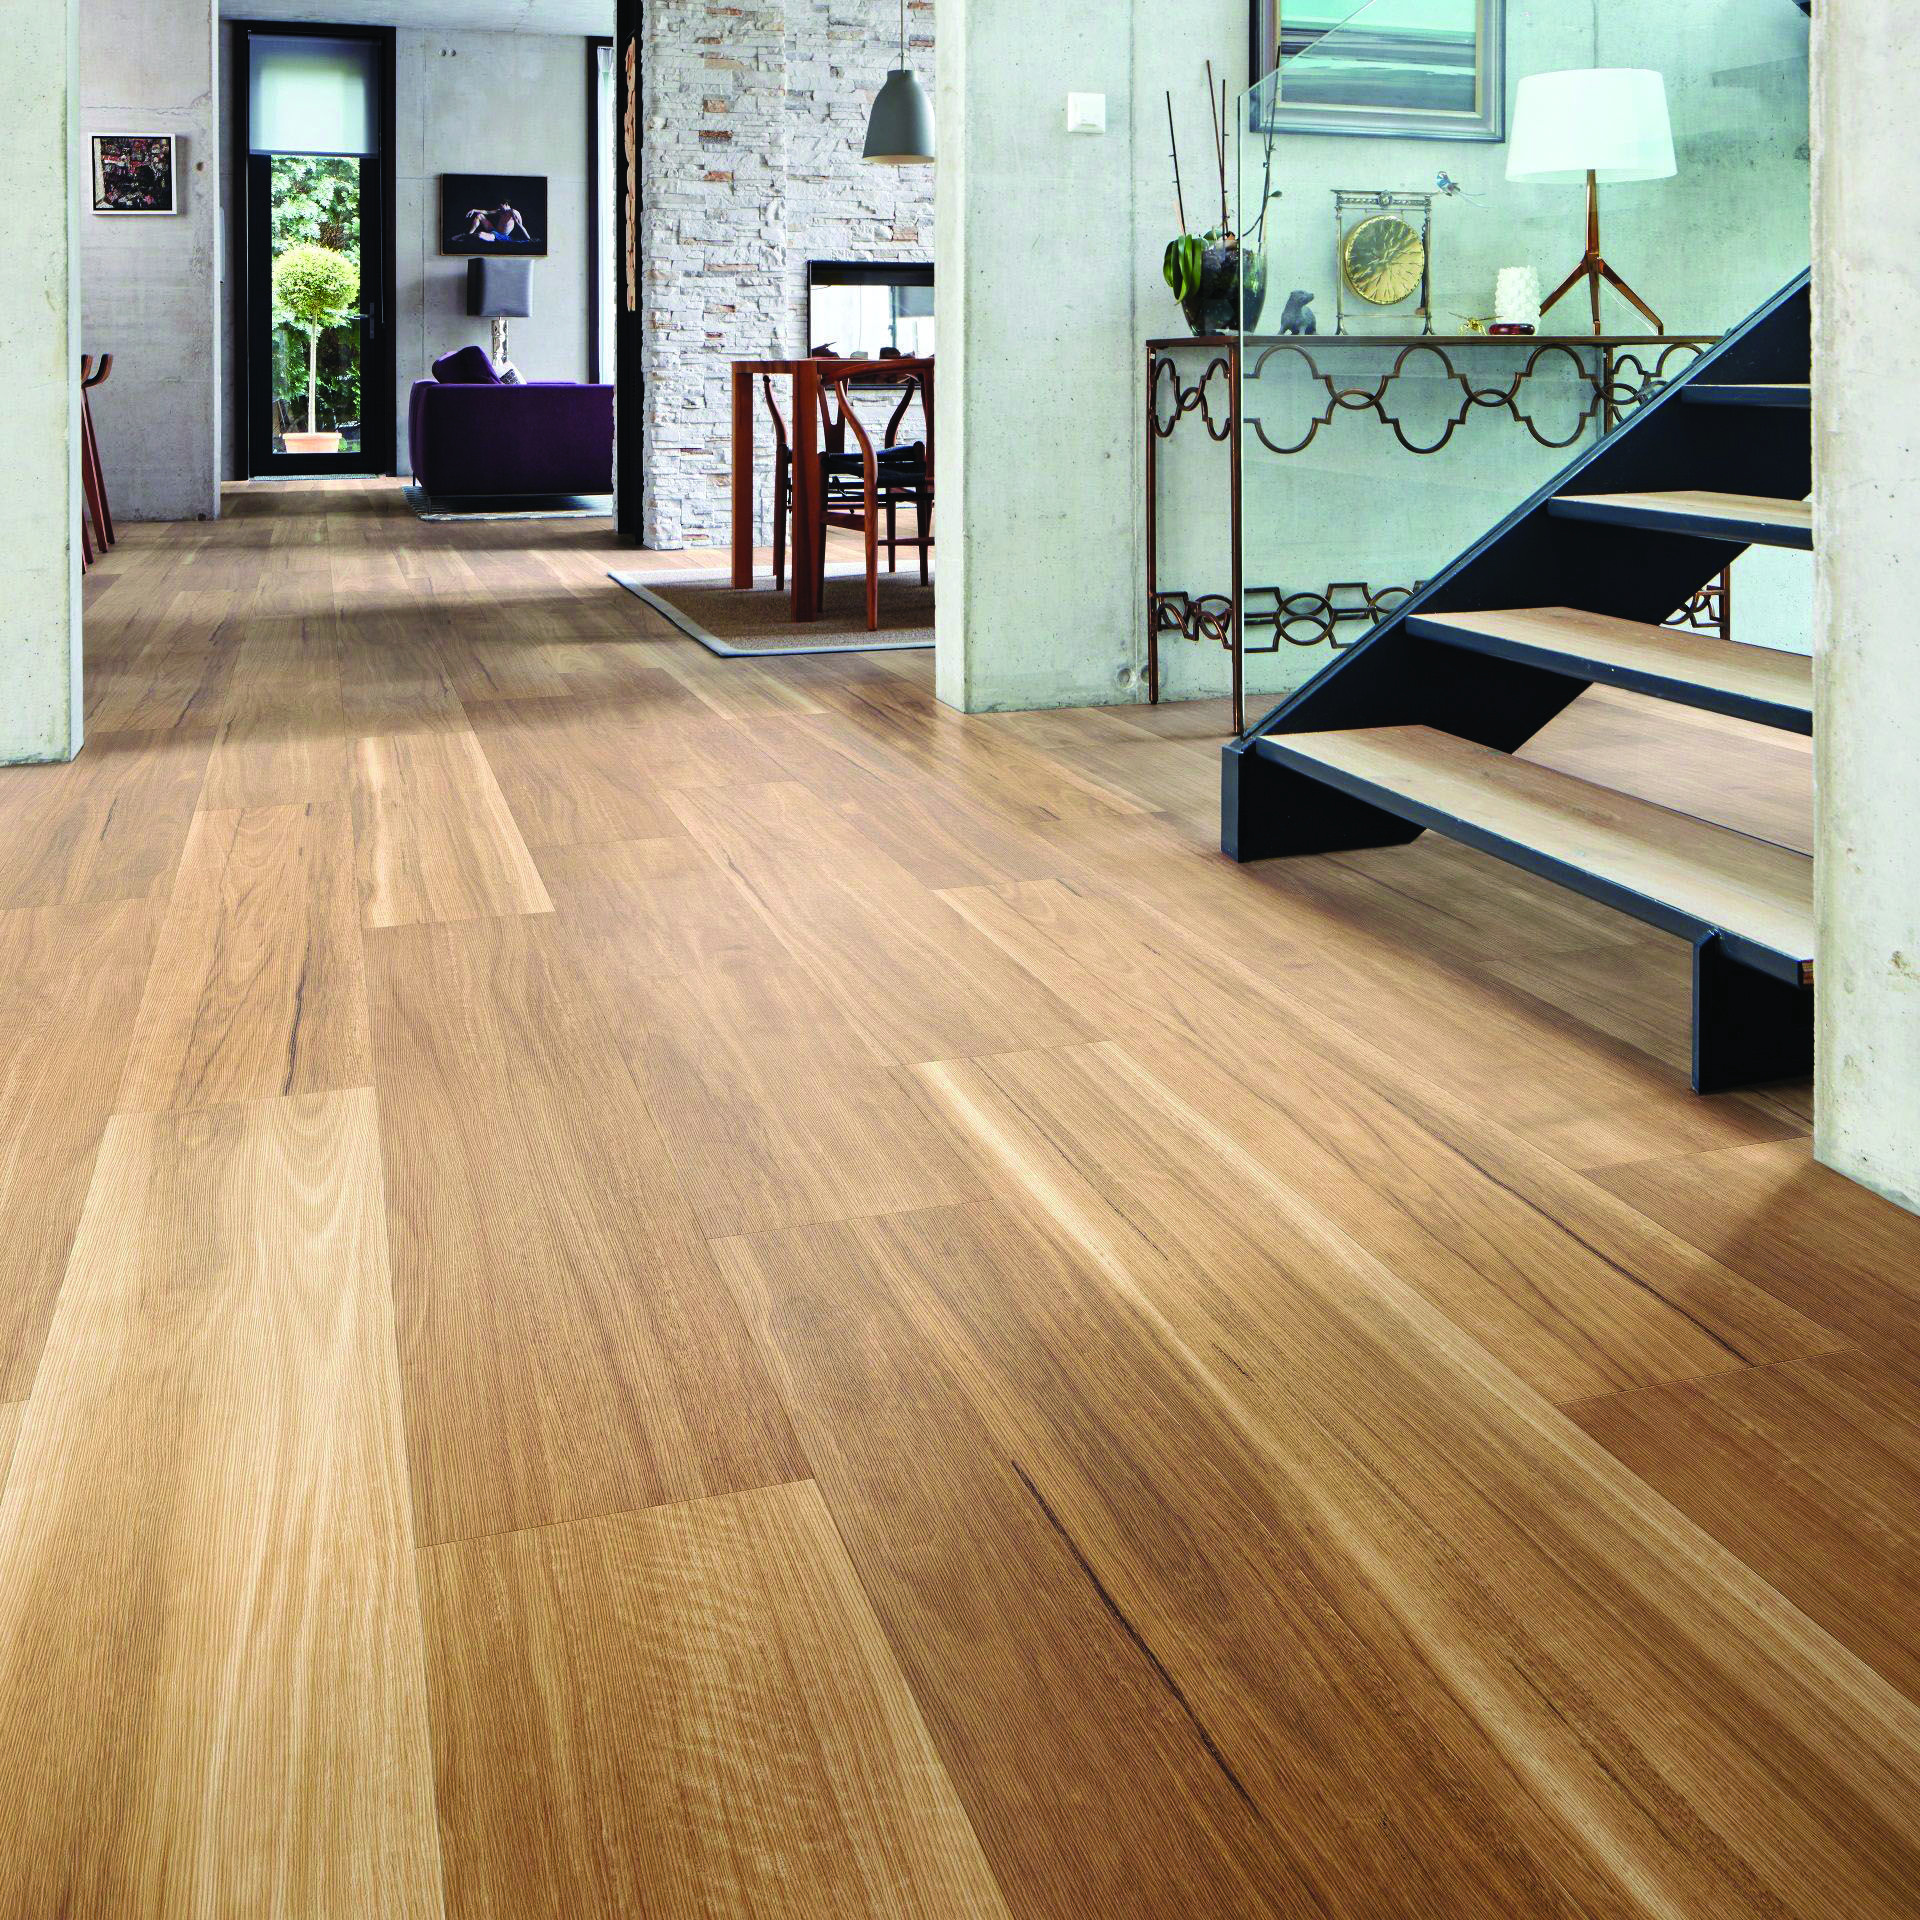 Wood Effect Tiles for Walls and also Floors Wood effect